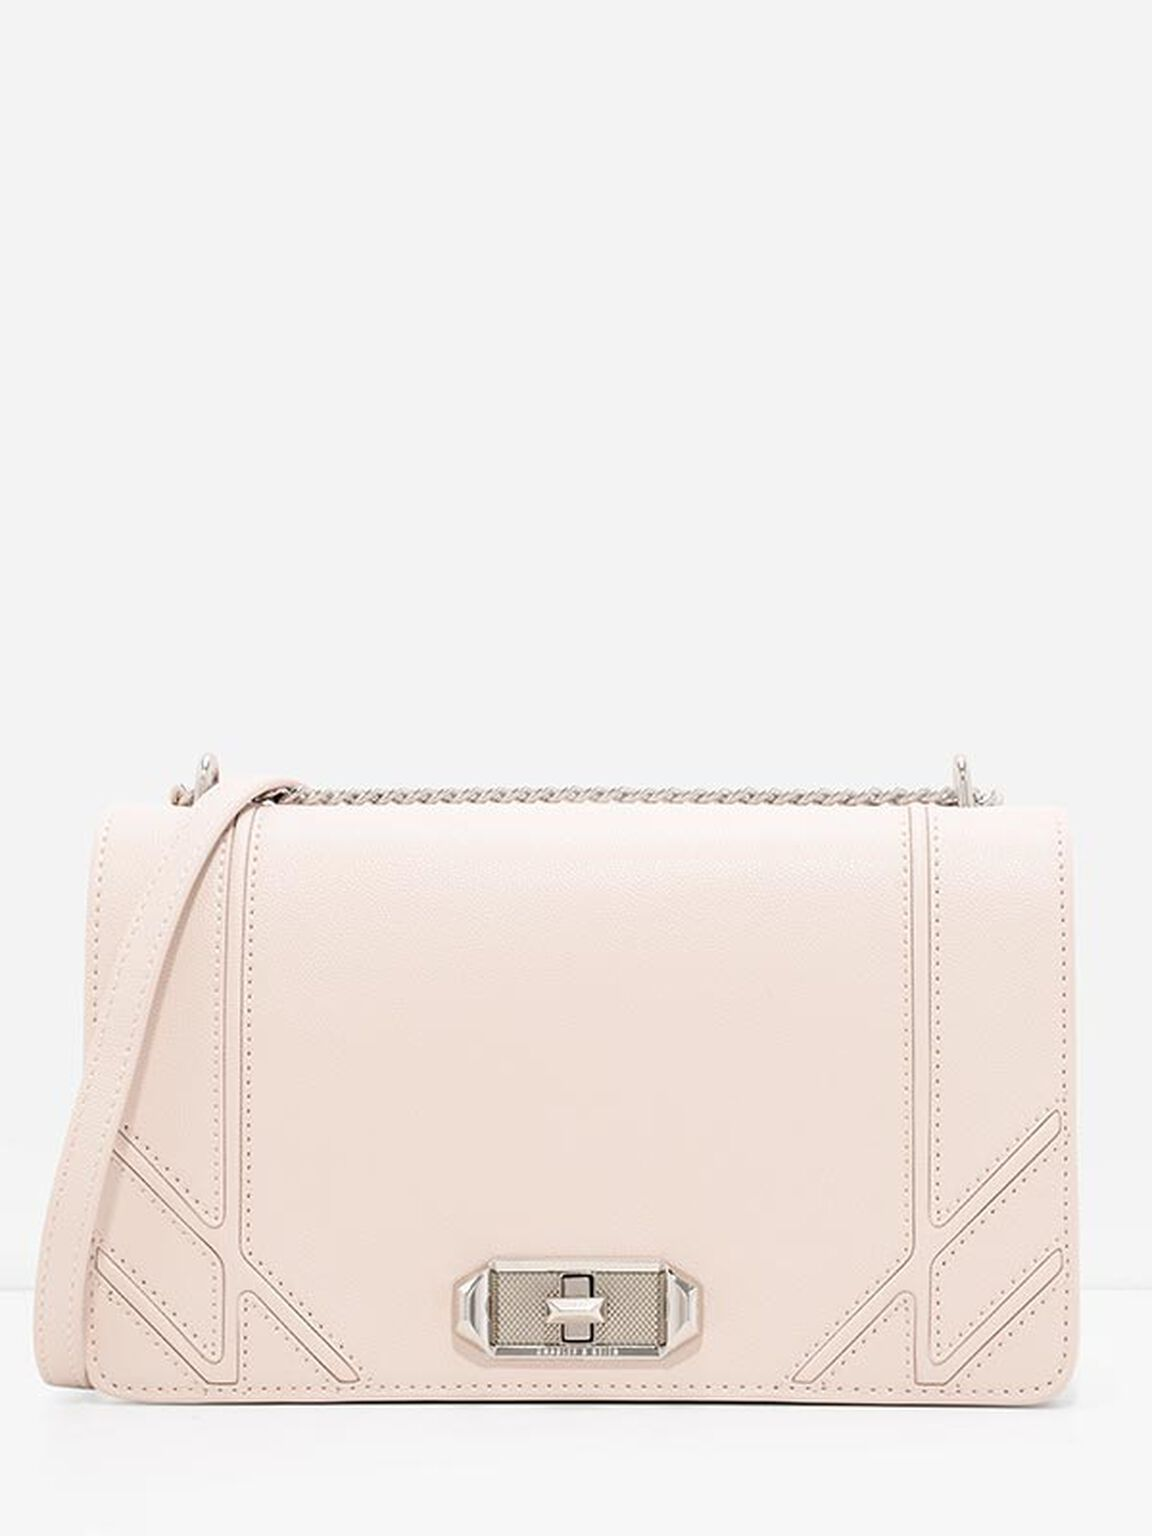 Turn-Lock Chain Crossbody, Light Pink, hi-res